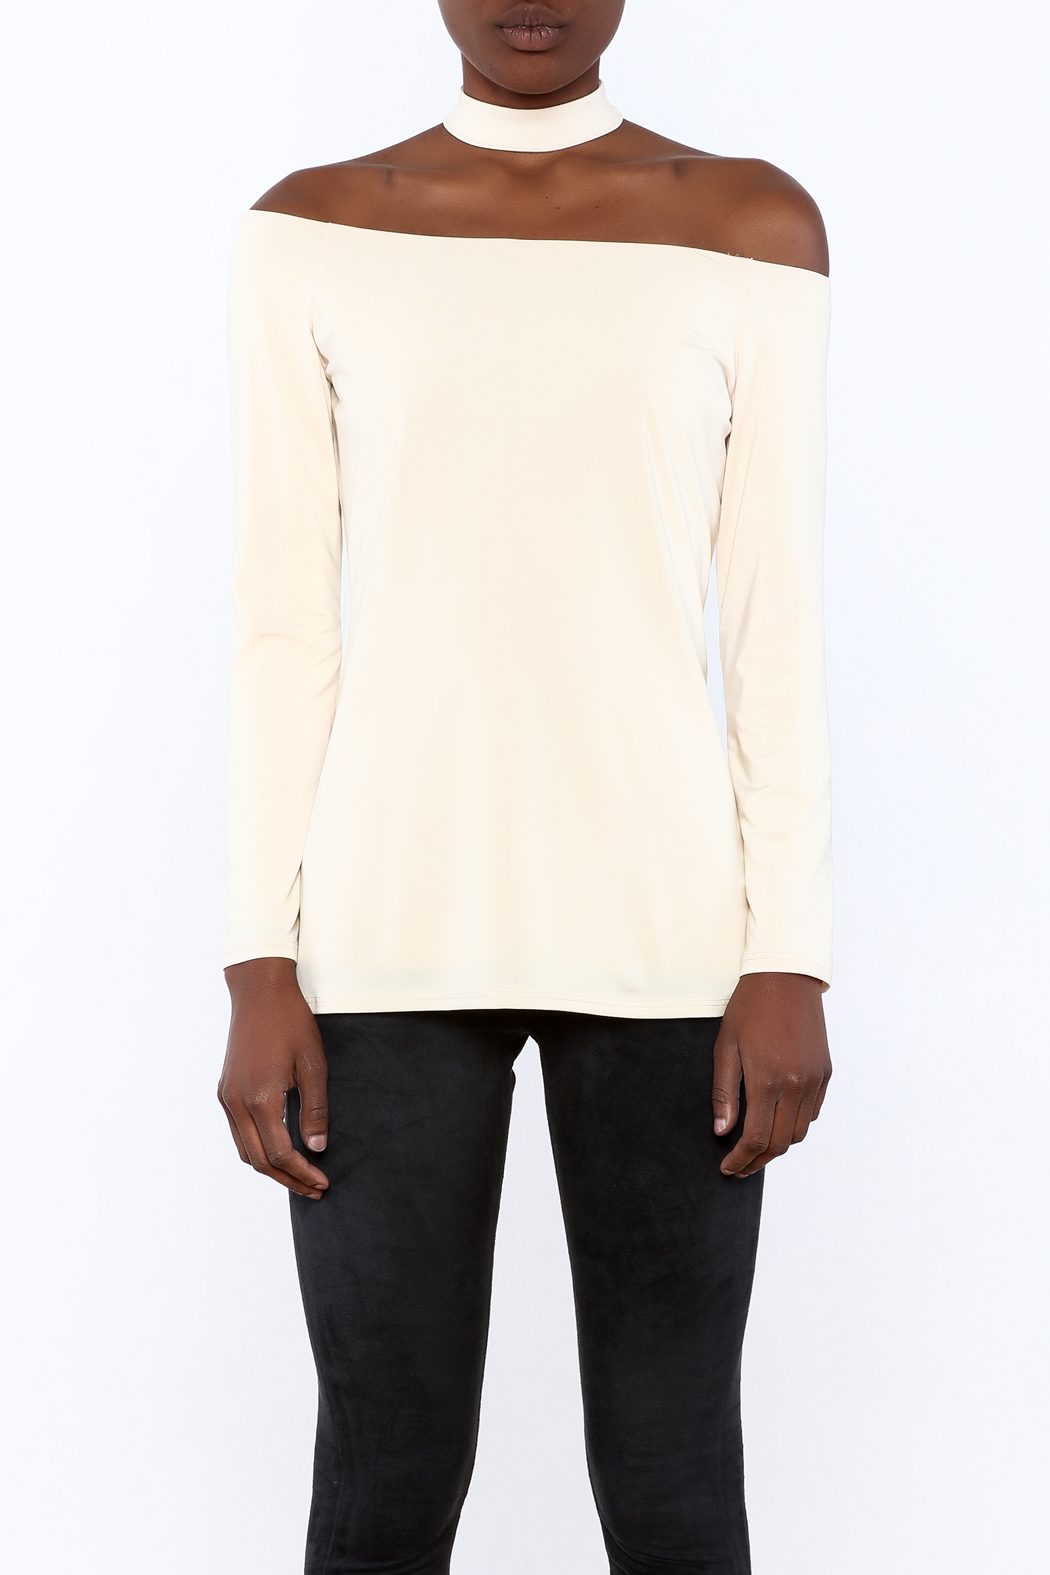 Lisa & Lucy Oyster Choker Top - Side Cropped Image